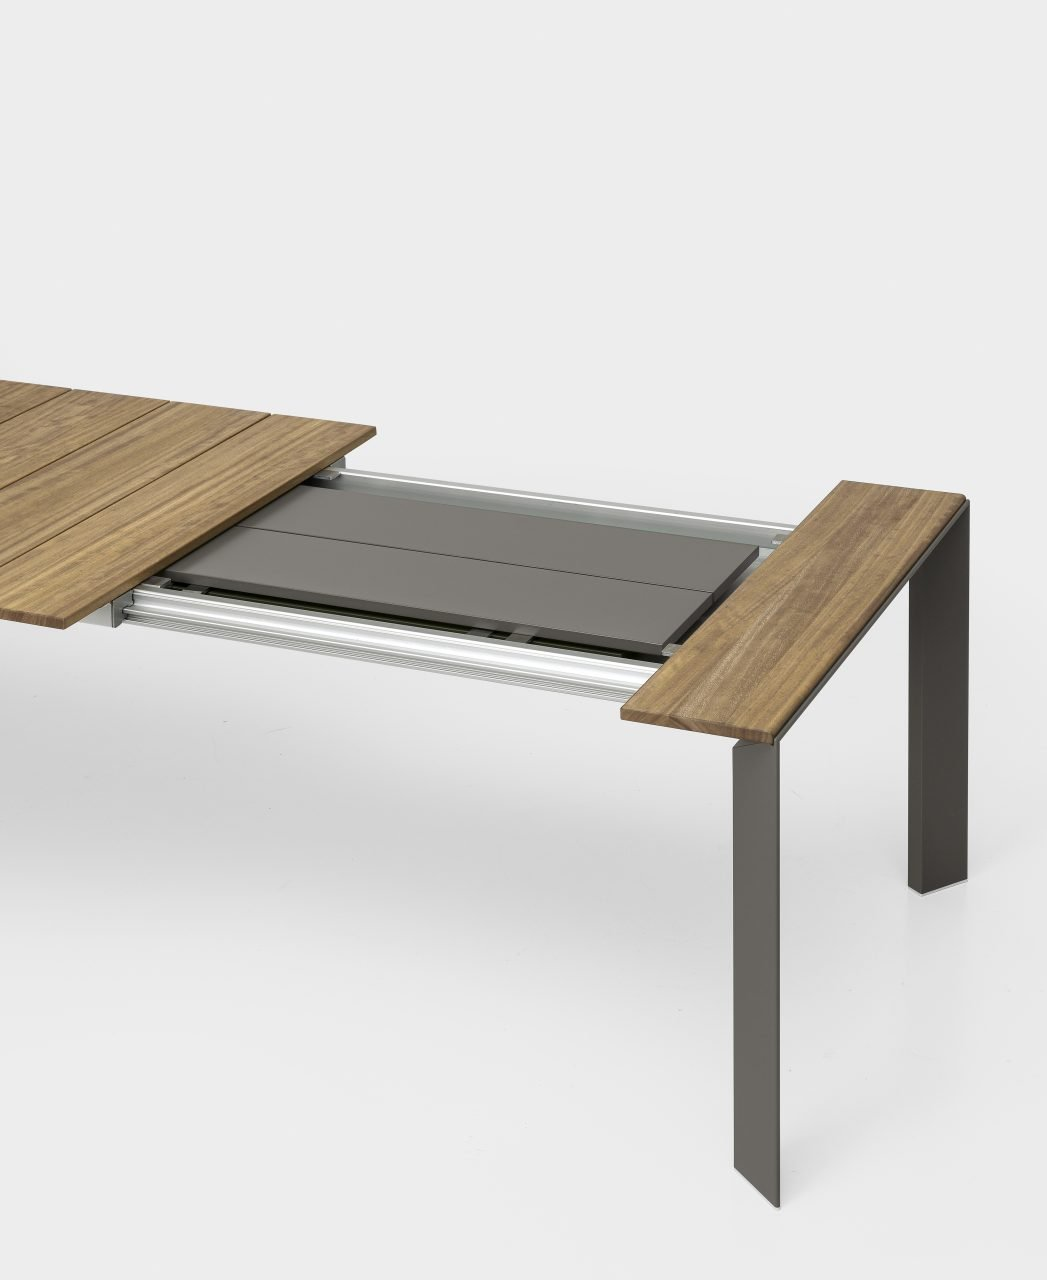 Nori Slatted Table dining from Kristalia, designed by Bartoli Design